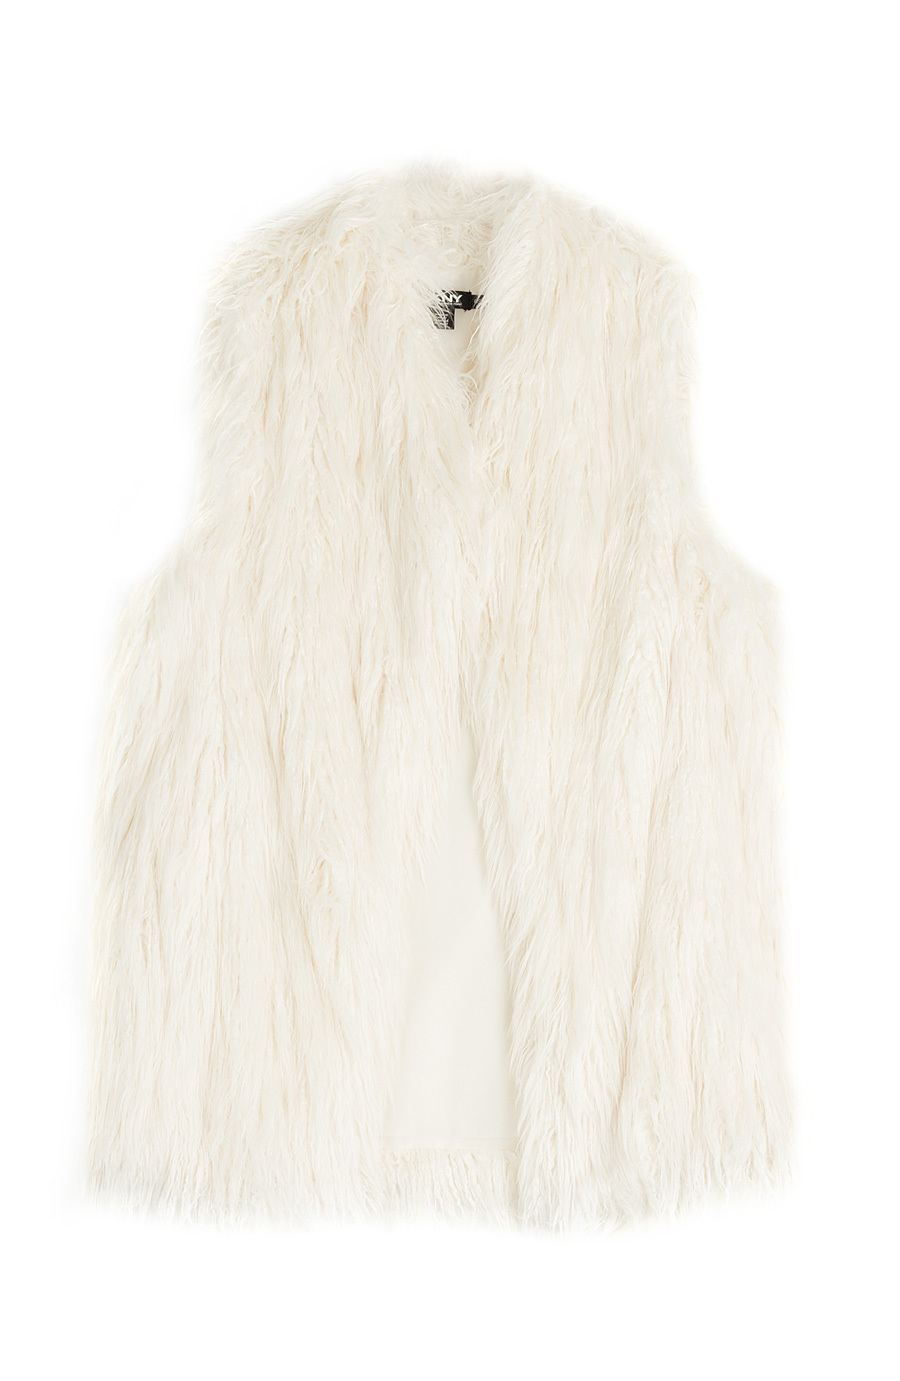 Faux Fur Vest - pattern: plain; sleeve style: sleeveless; style: gilet; collar: round collar/collarless; predominant colour: ivory/cream; length: standard; fit: straight cut (boxy); fibres: acrylic - 100%; sleeve length: sleeveless; texture group: fur; collar break: medium; season: a/w 2015; trends: folky 70s, warm and fuzzy; wardrobe: highlight